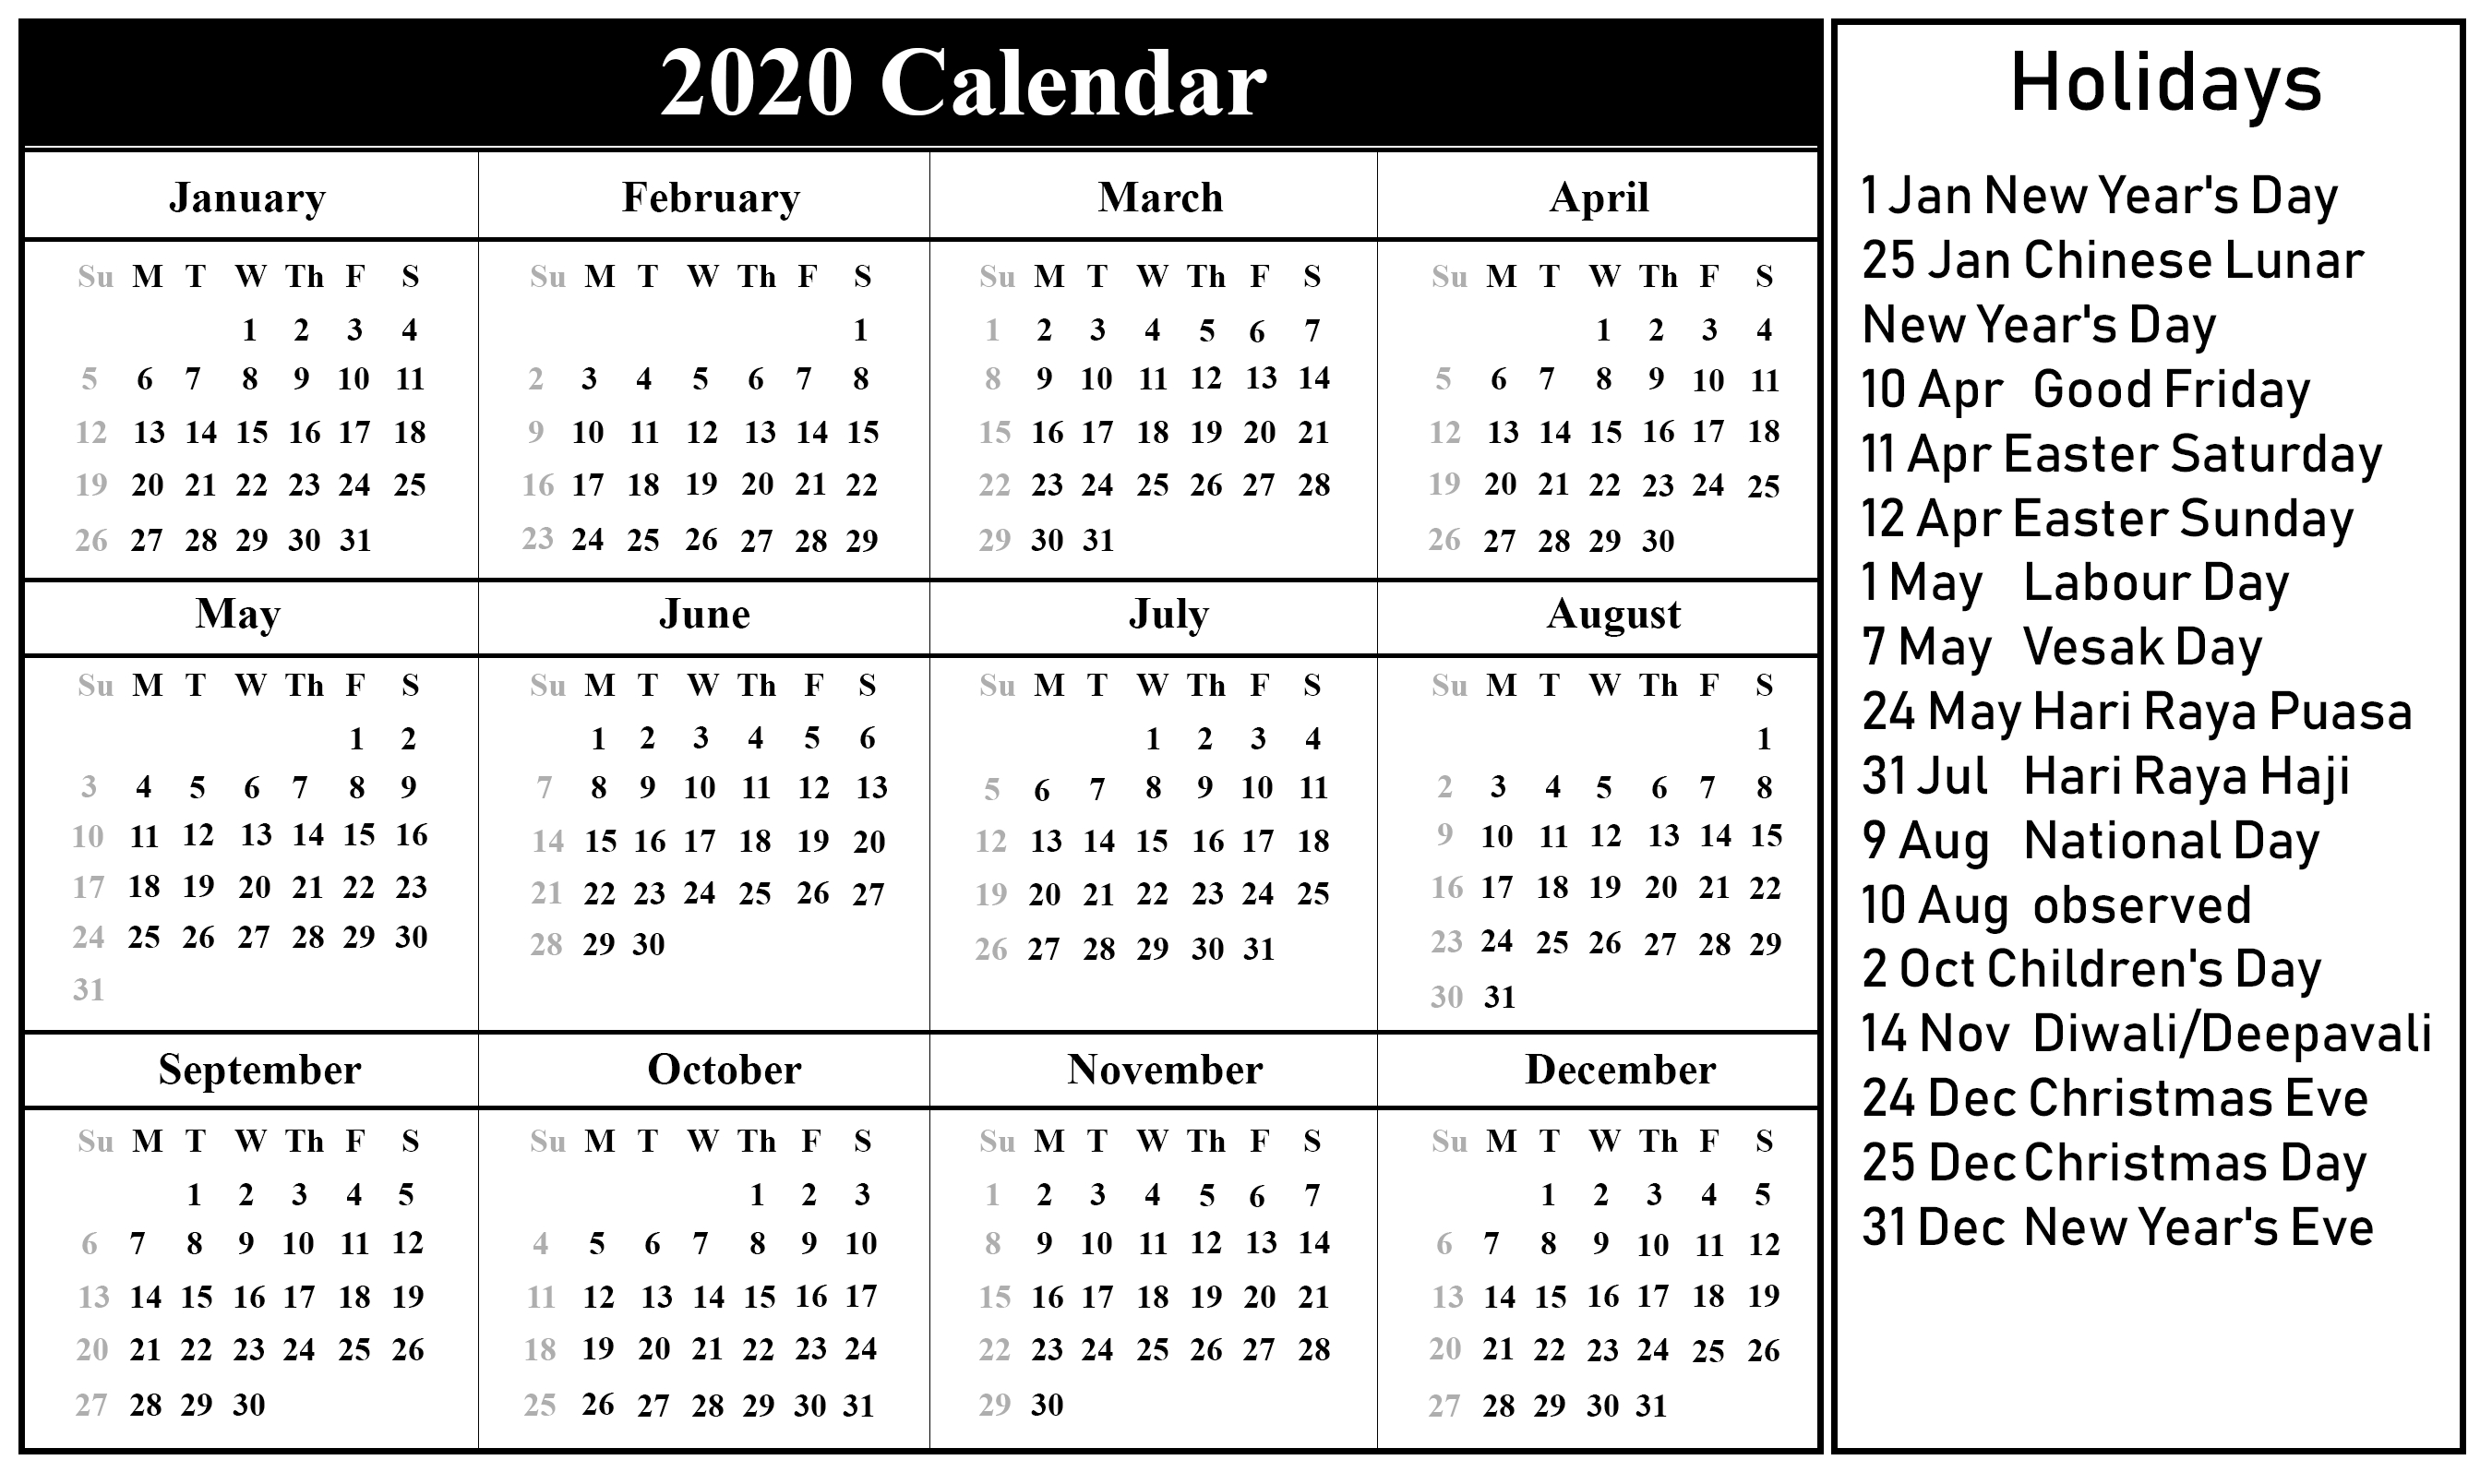 Printable 2020 Calendar With Holidays   Monthly Calendar-2020 Calendar With Holidays In India Pdf